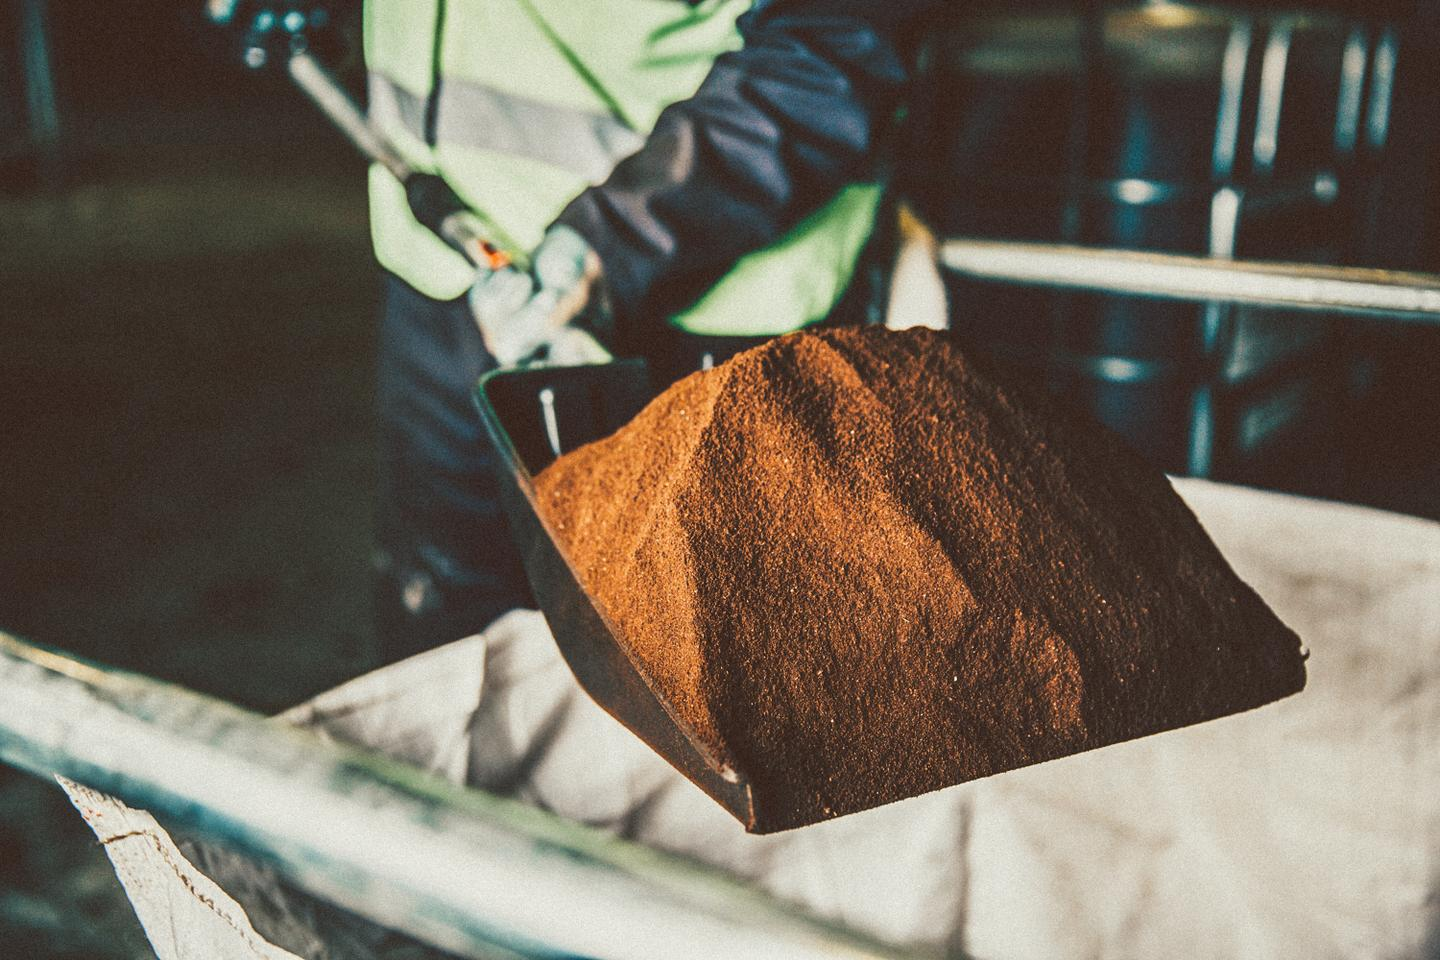 Used coffee grounds are diverted from landfills and turned into biofuels by London company Bio-bean